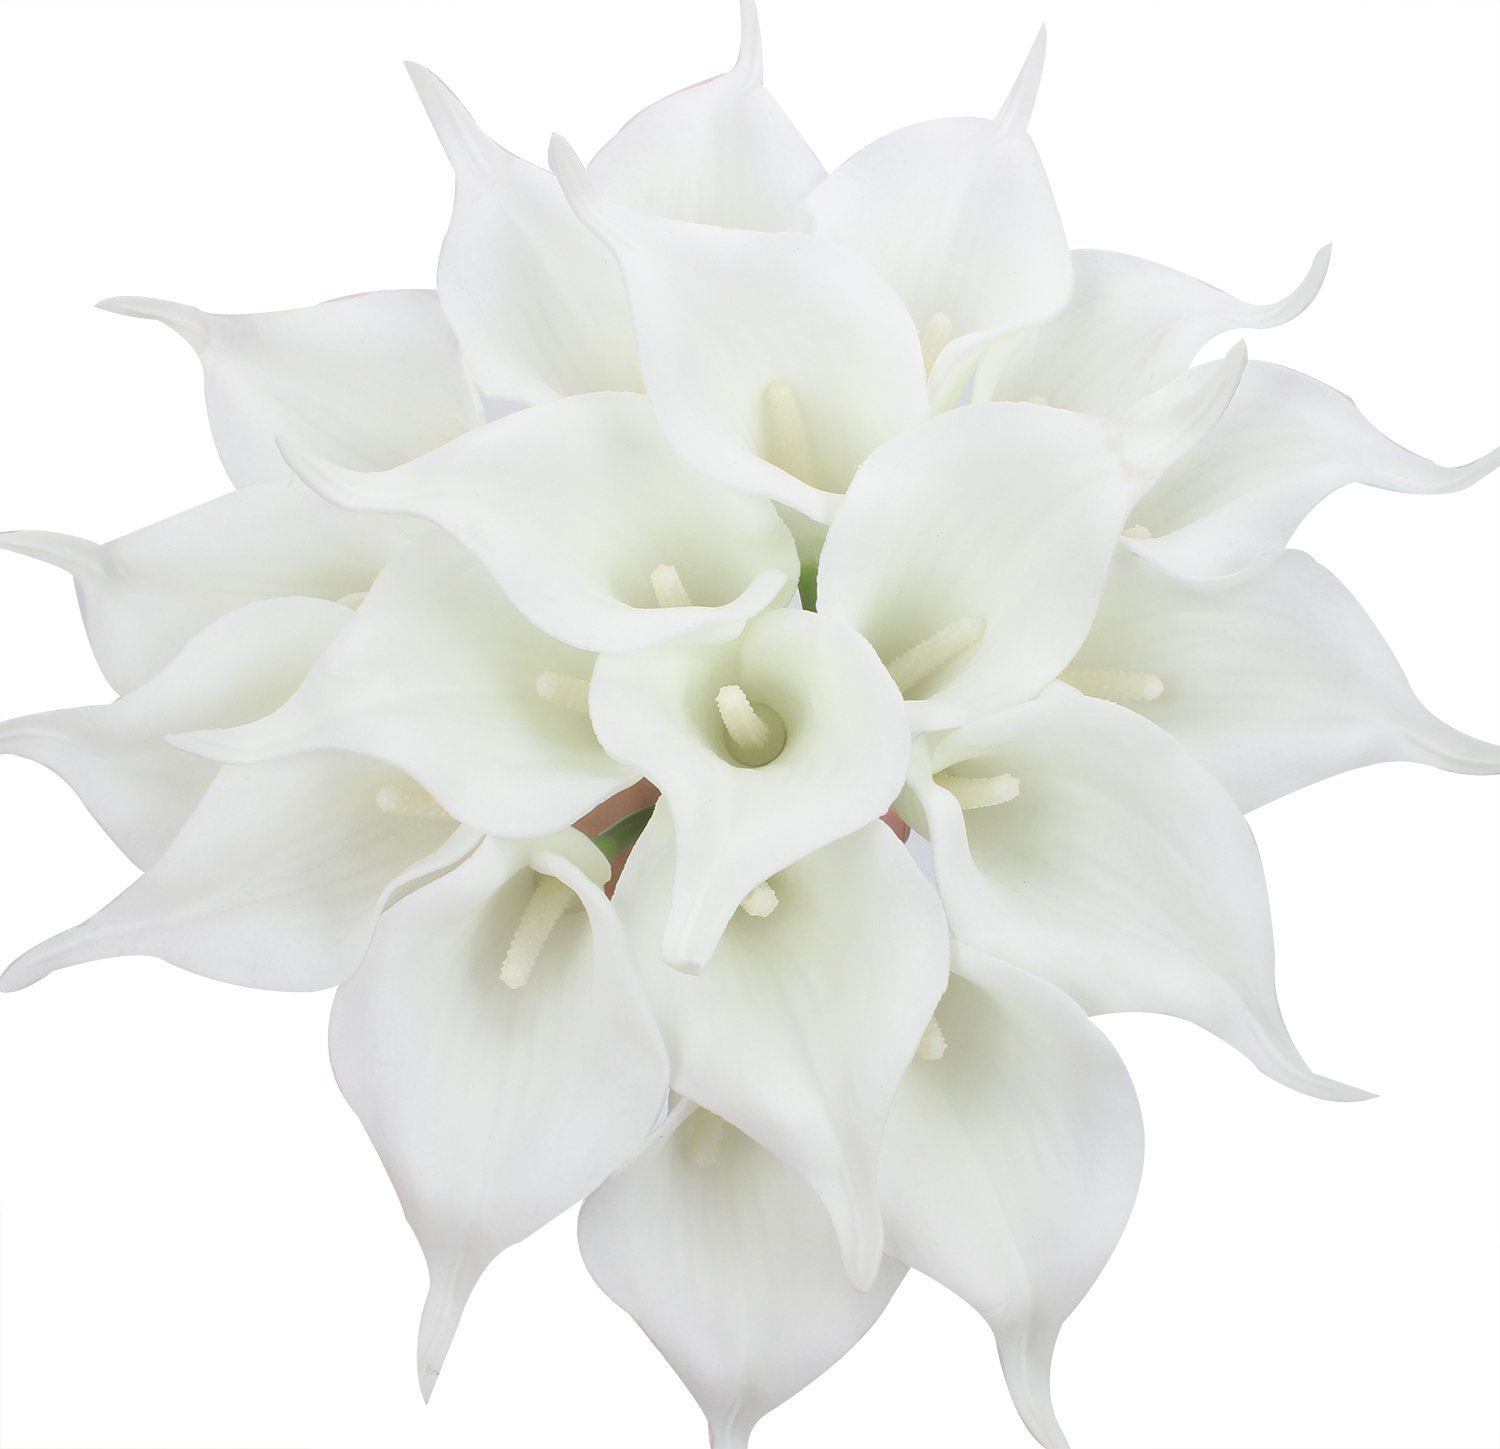 Duovlo 20pcs Calla Lily Bridal Wedding Bouquet Lataex Real Touch Artificial Flower Home Party Decor (Pure White)